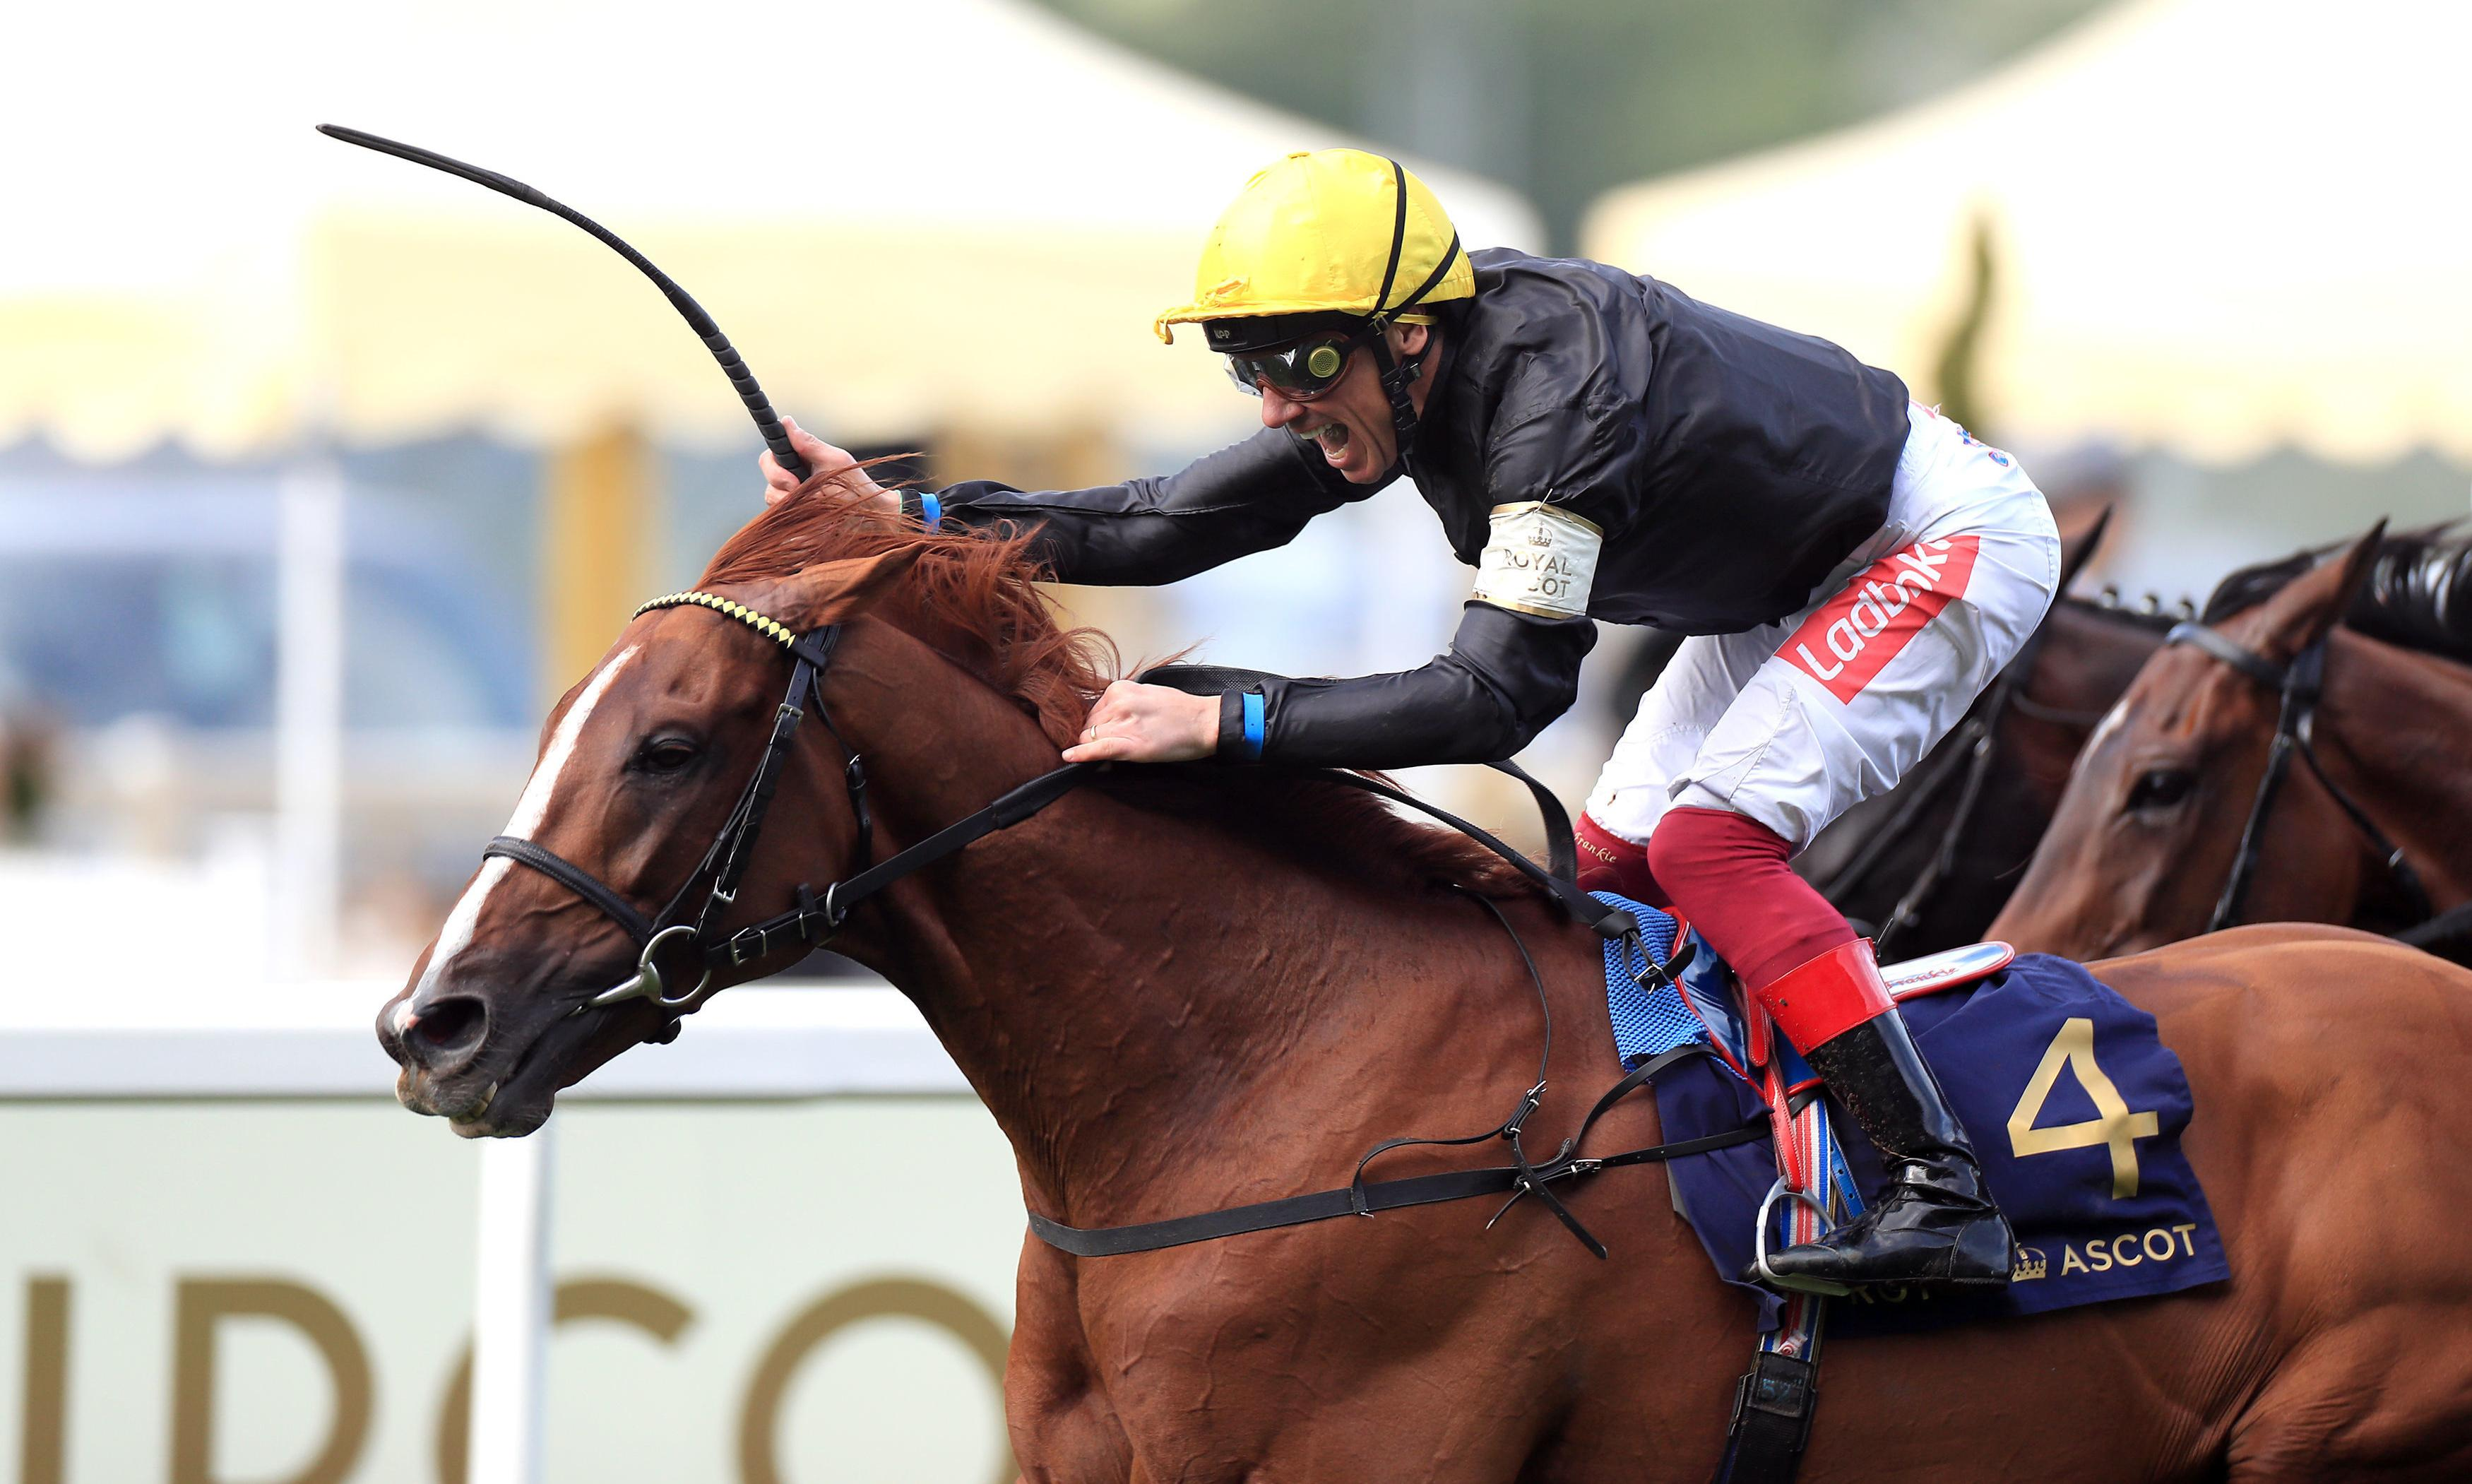 Frankie Dettori wins Gold Cup on Stradivarius for four-timer at Royal Ascot